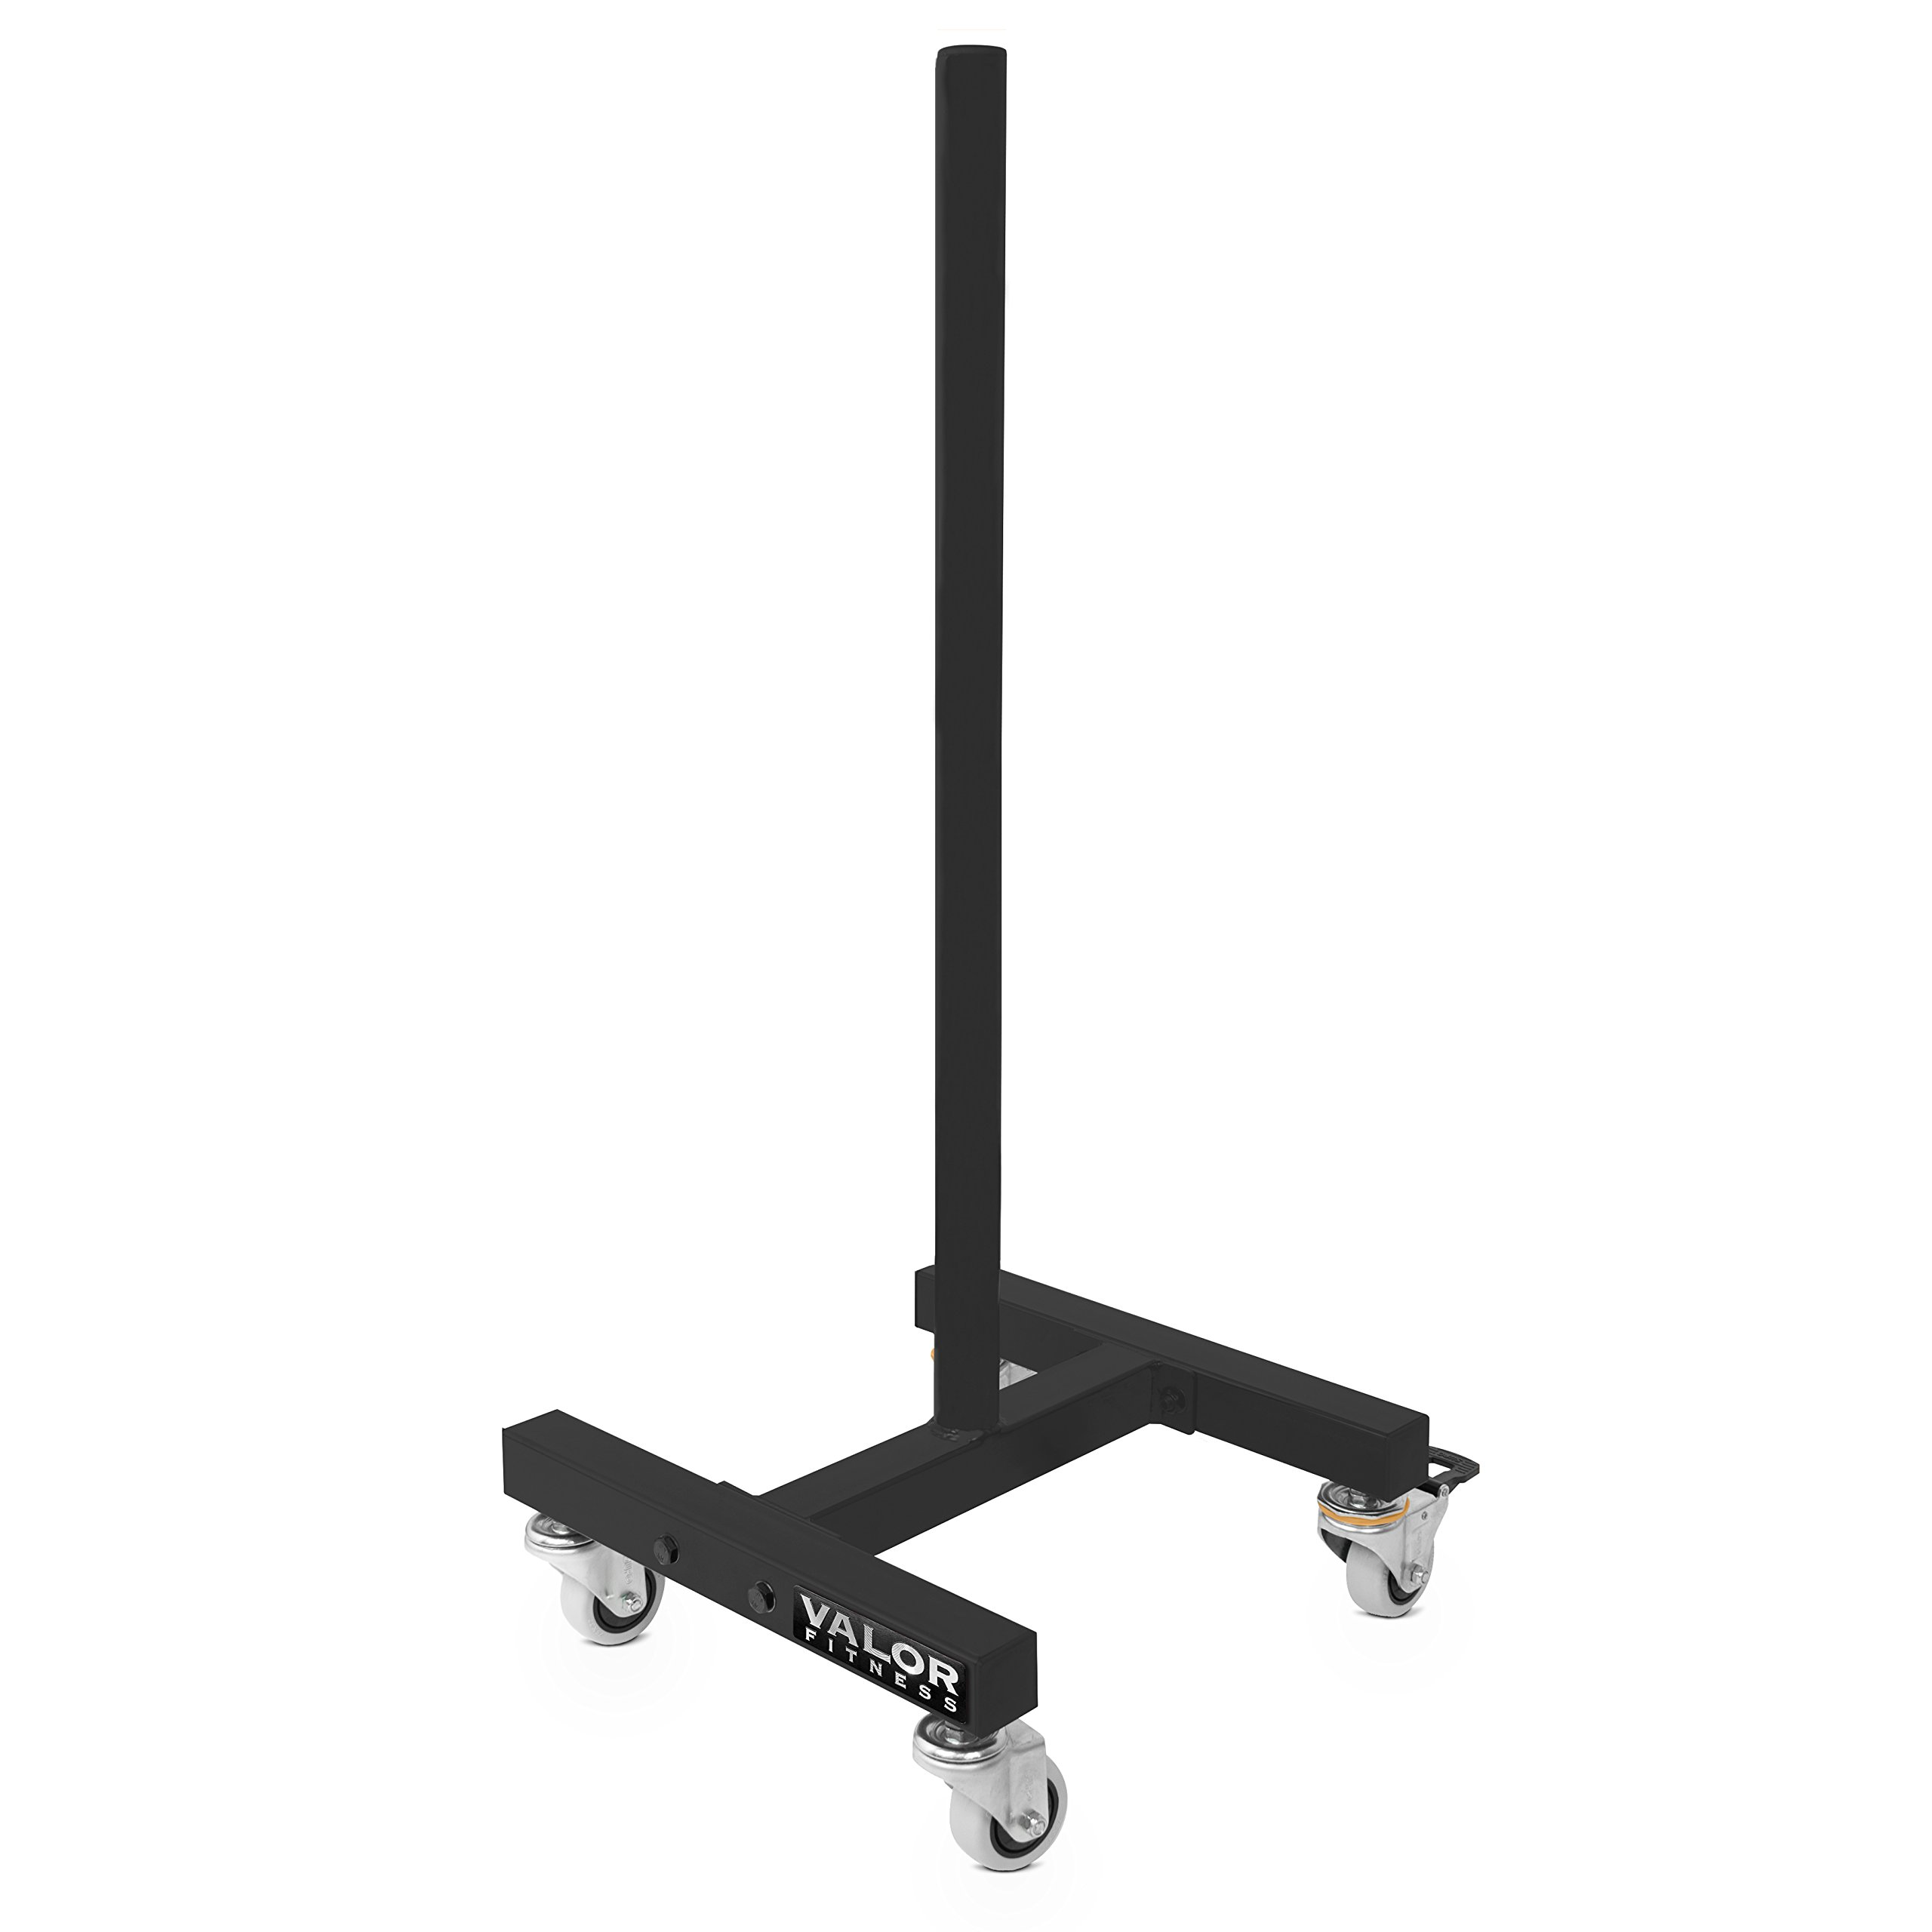 ValorPRO BH-19 Bumper Plate Stand with wheels